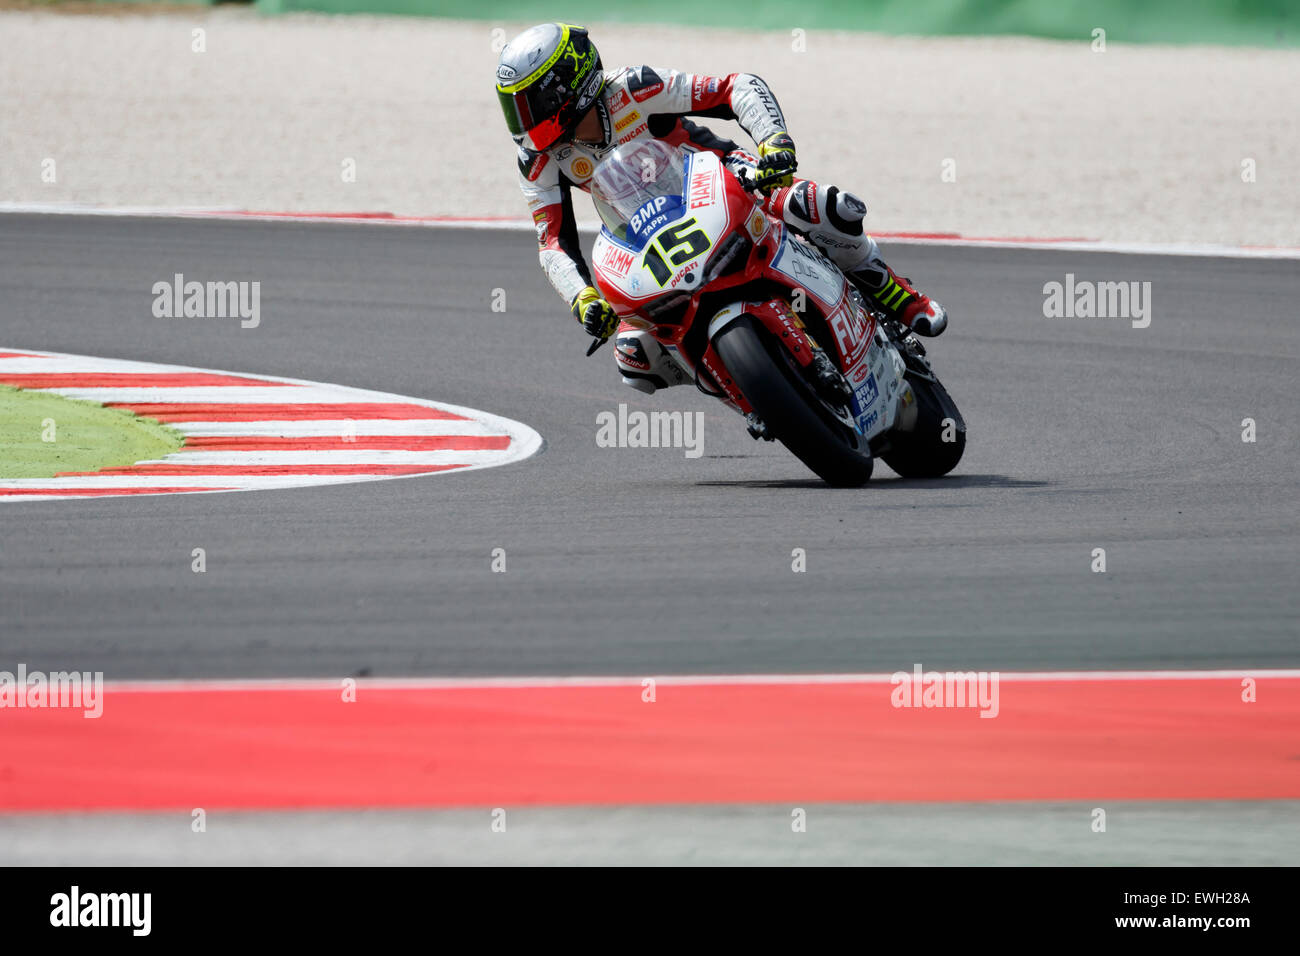 Misano Adriatico, Italy - June 20: Ducati Panigale R of Althea Racing Team, driven by BAIOCCO Matteo Stock Photo